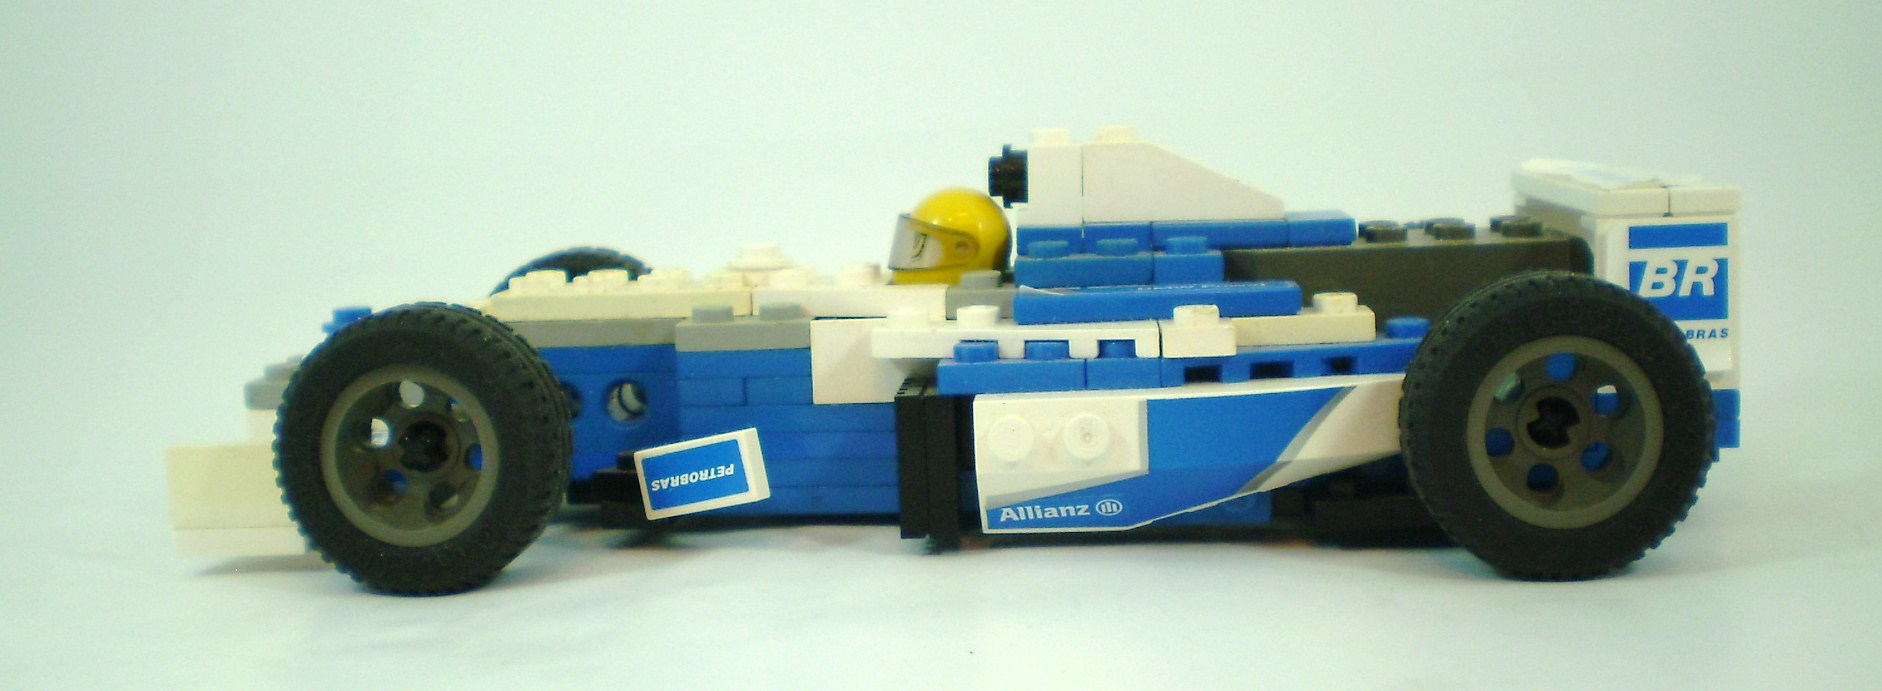 formula1_williams_bmw_02.jpg